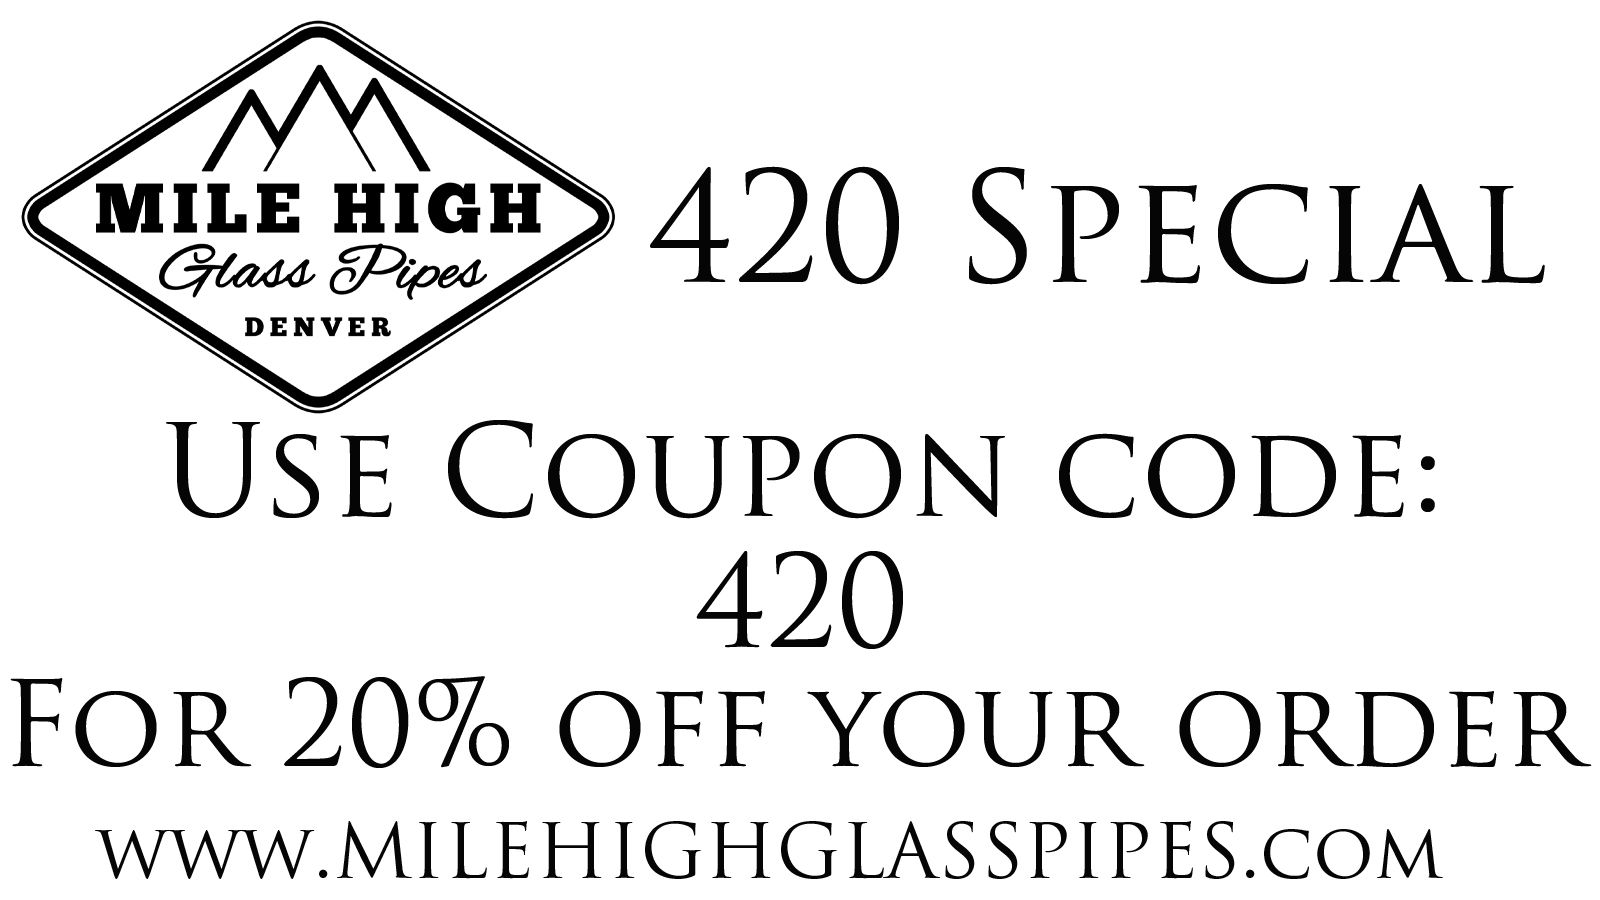 Get 20 off your entire order at mile high glass pipes now through 4 get 20 off your entire order at mile high glass pipes now through 4 fandeluxe